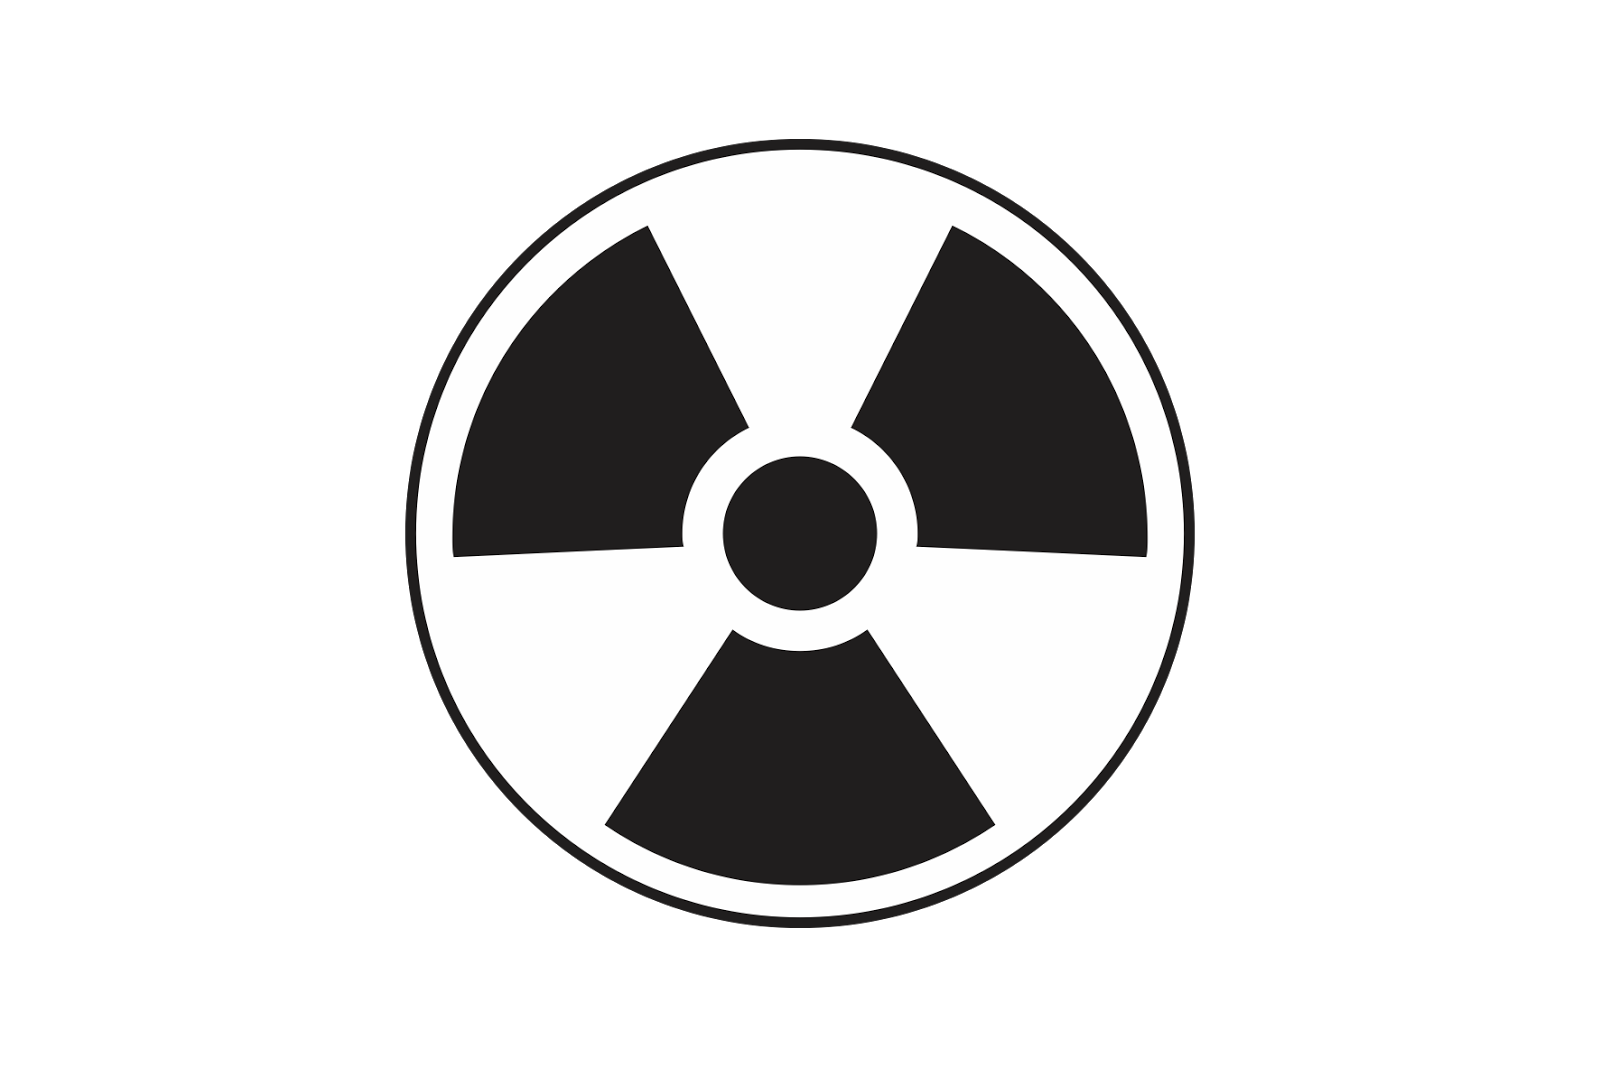 Symbol for the radioactive isotope known as carbon 14 dating 9